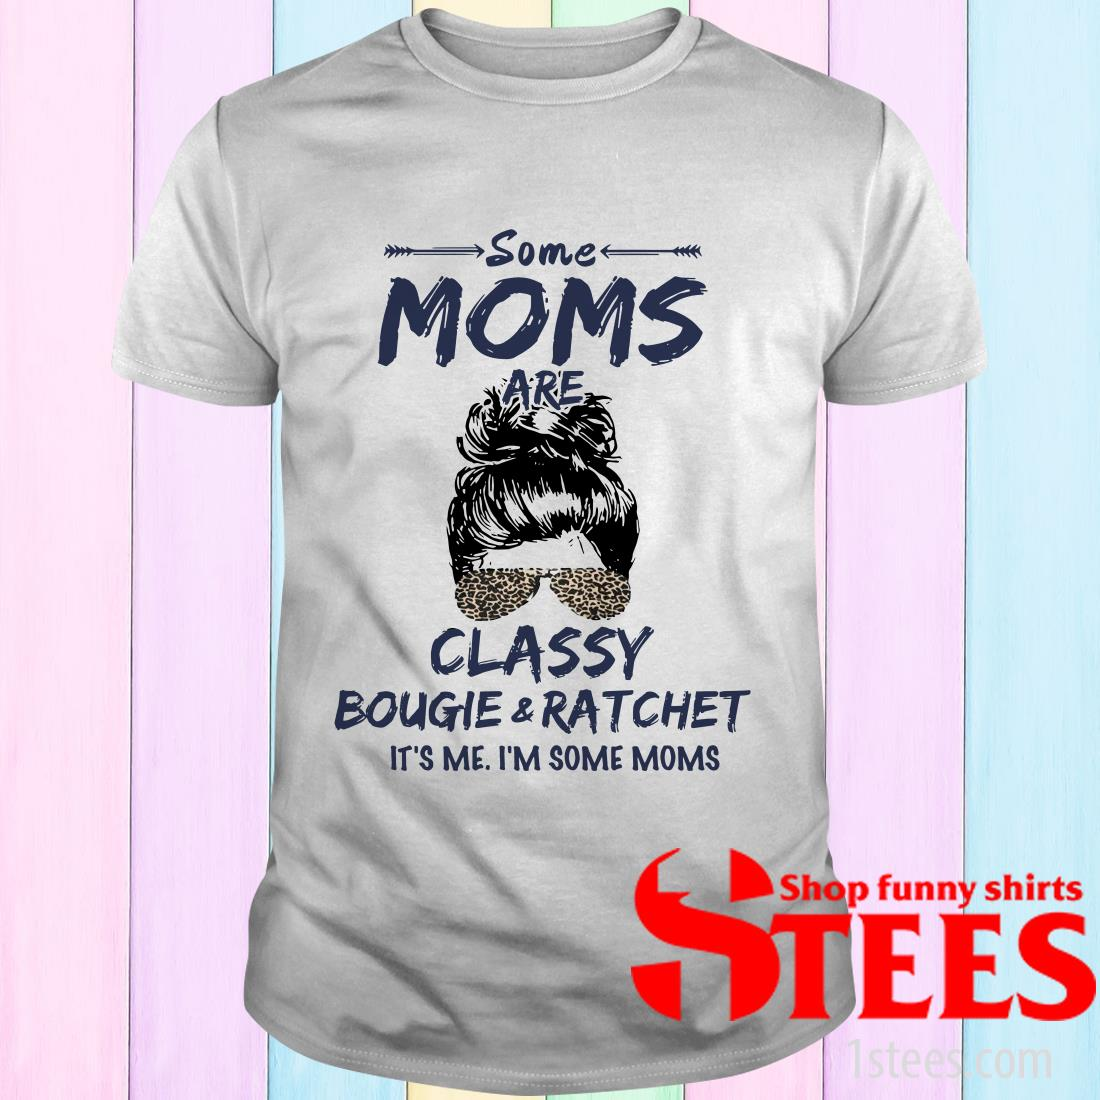 Some Moms Are Classy Bougie And Ratchet It's Me I'm Some Moms T-Shirt